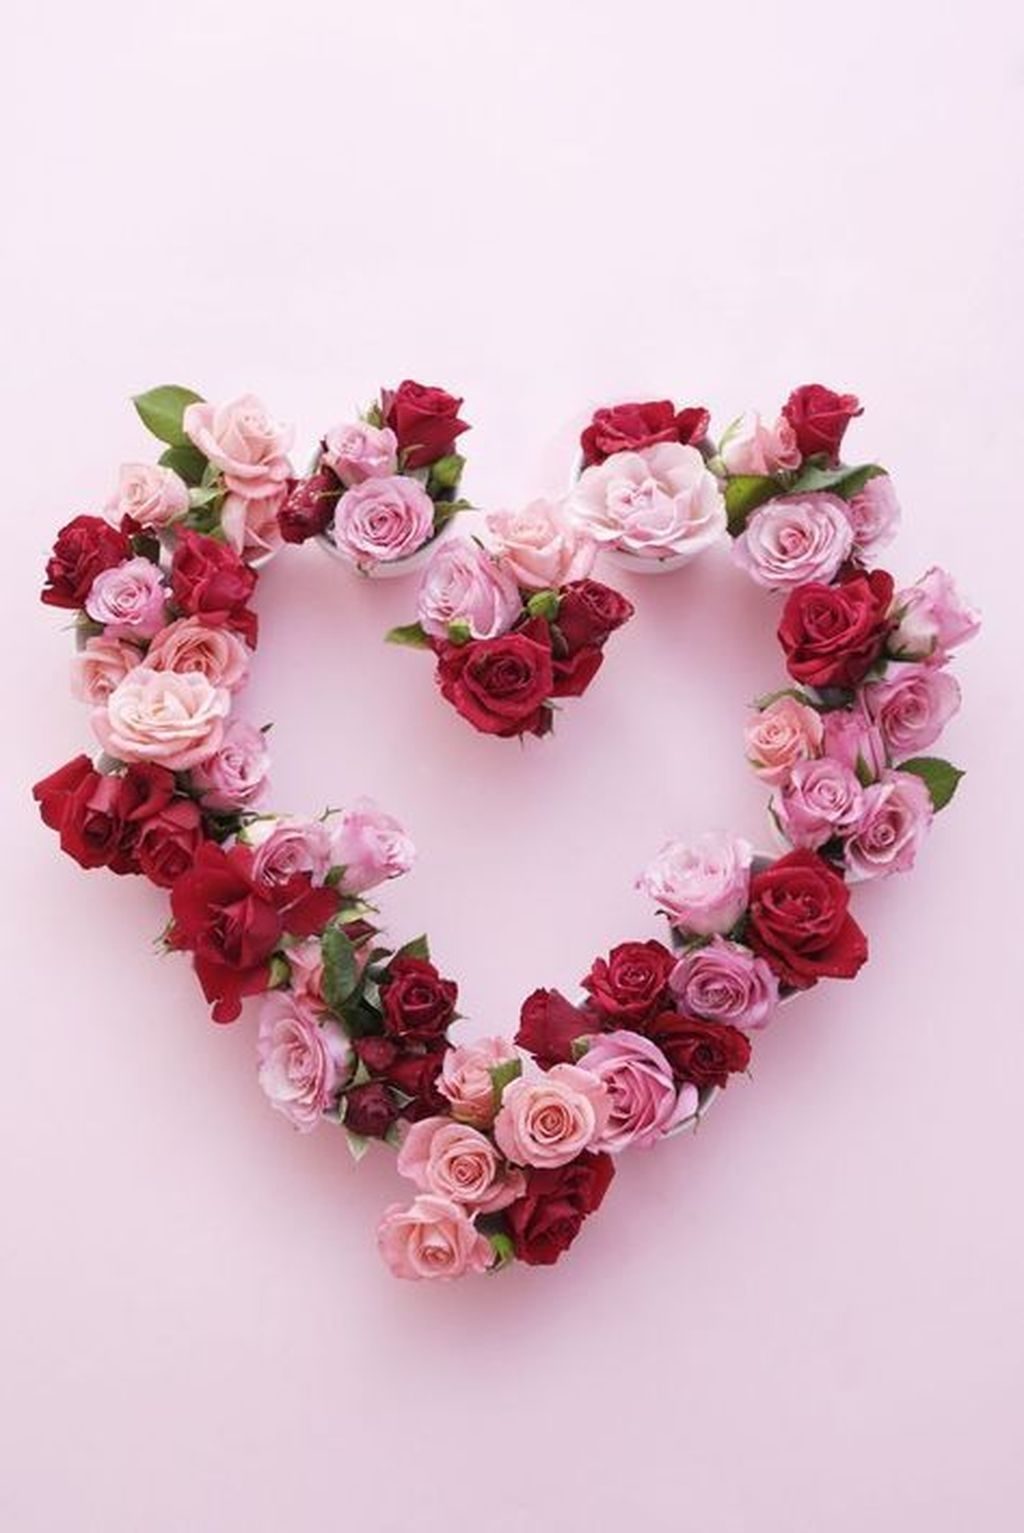 Valentine's day garden decor   Cute Flower Decoration Ideas For ValentineuS Day  Flower